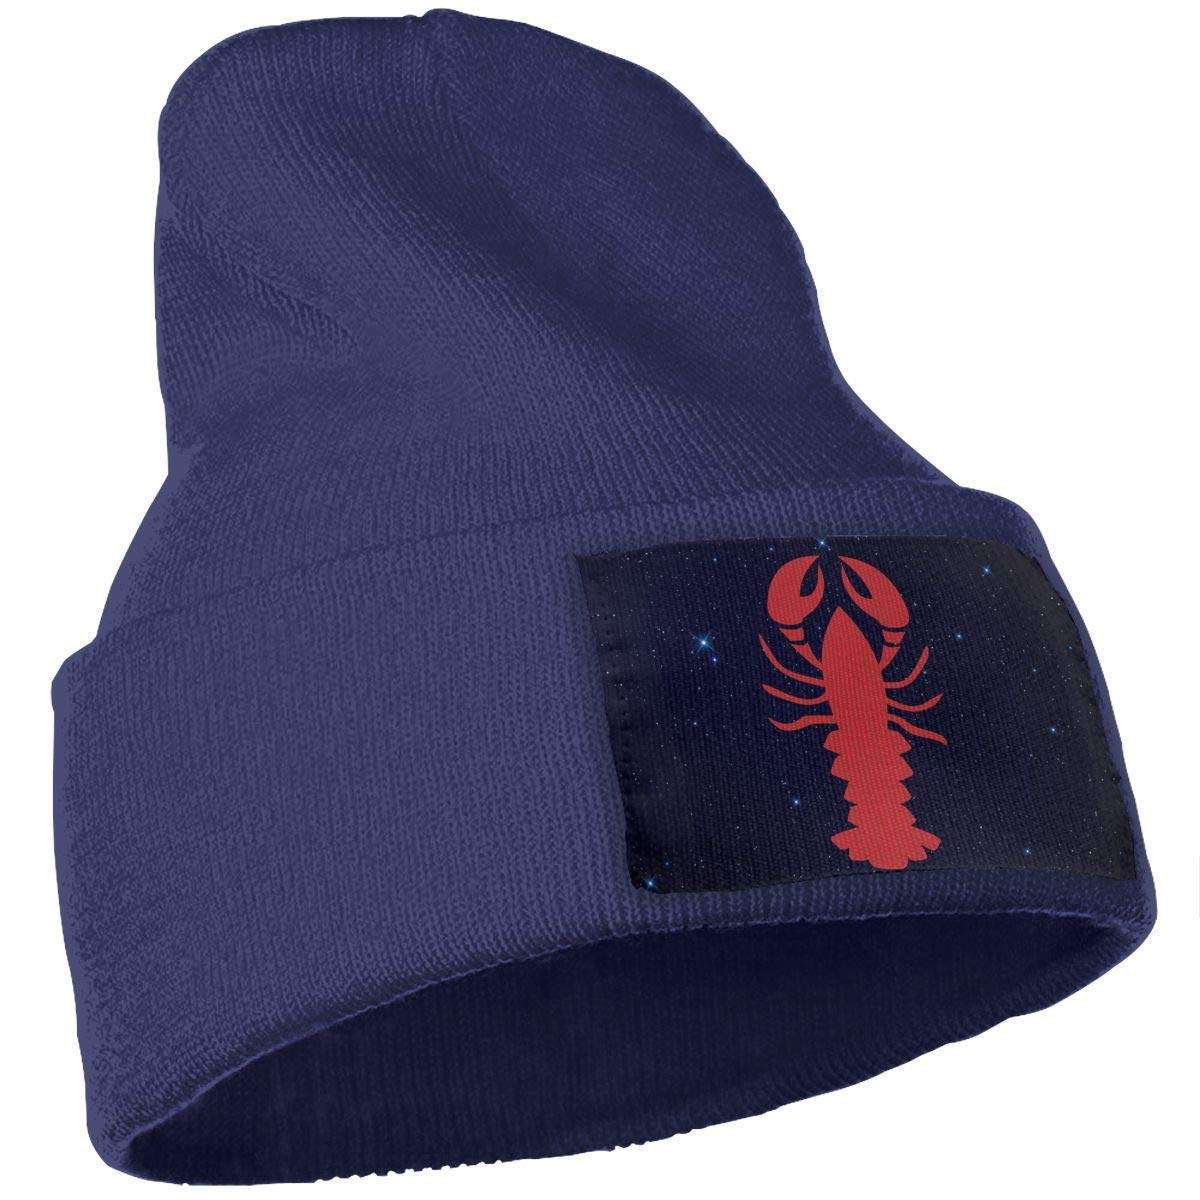 Lobster Clipart Men /& Women Knitting Hats Stretchy /& Soft Ski Cap Beanie